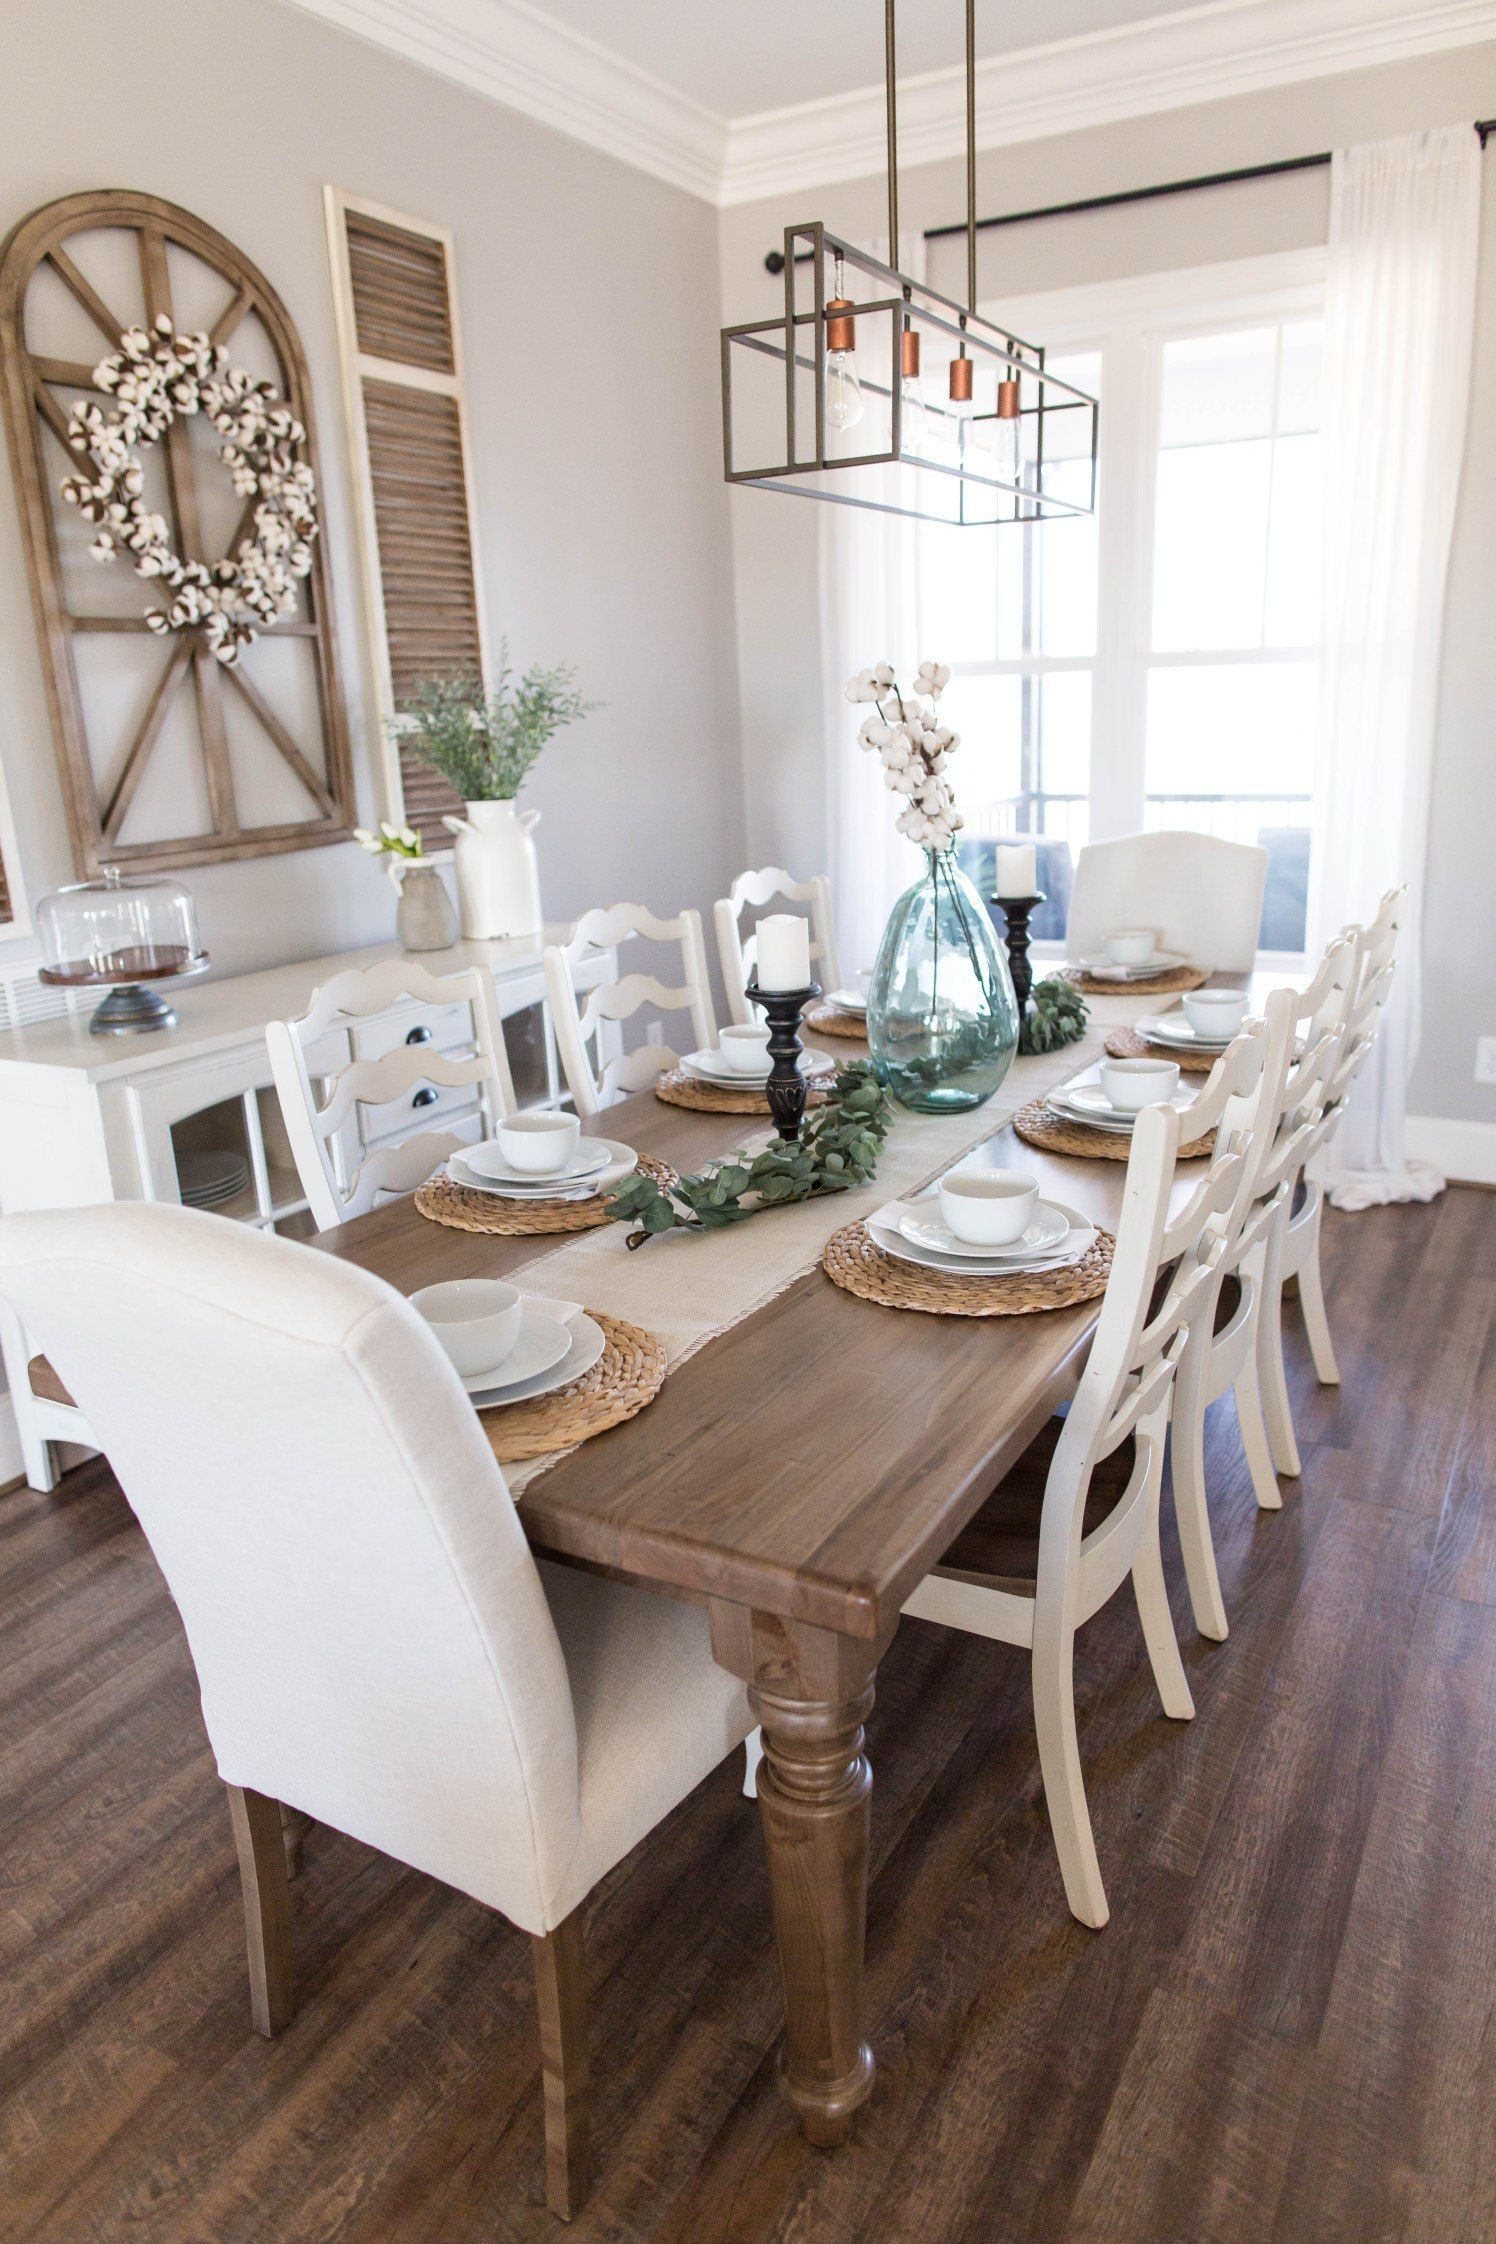 Popular Rustic Farmhouse Style Ideas For Dining Room Decor 20